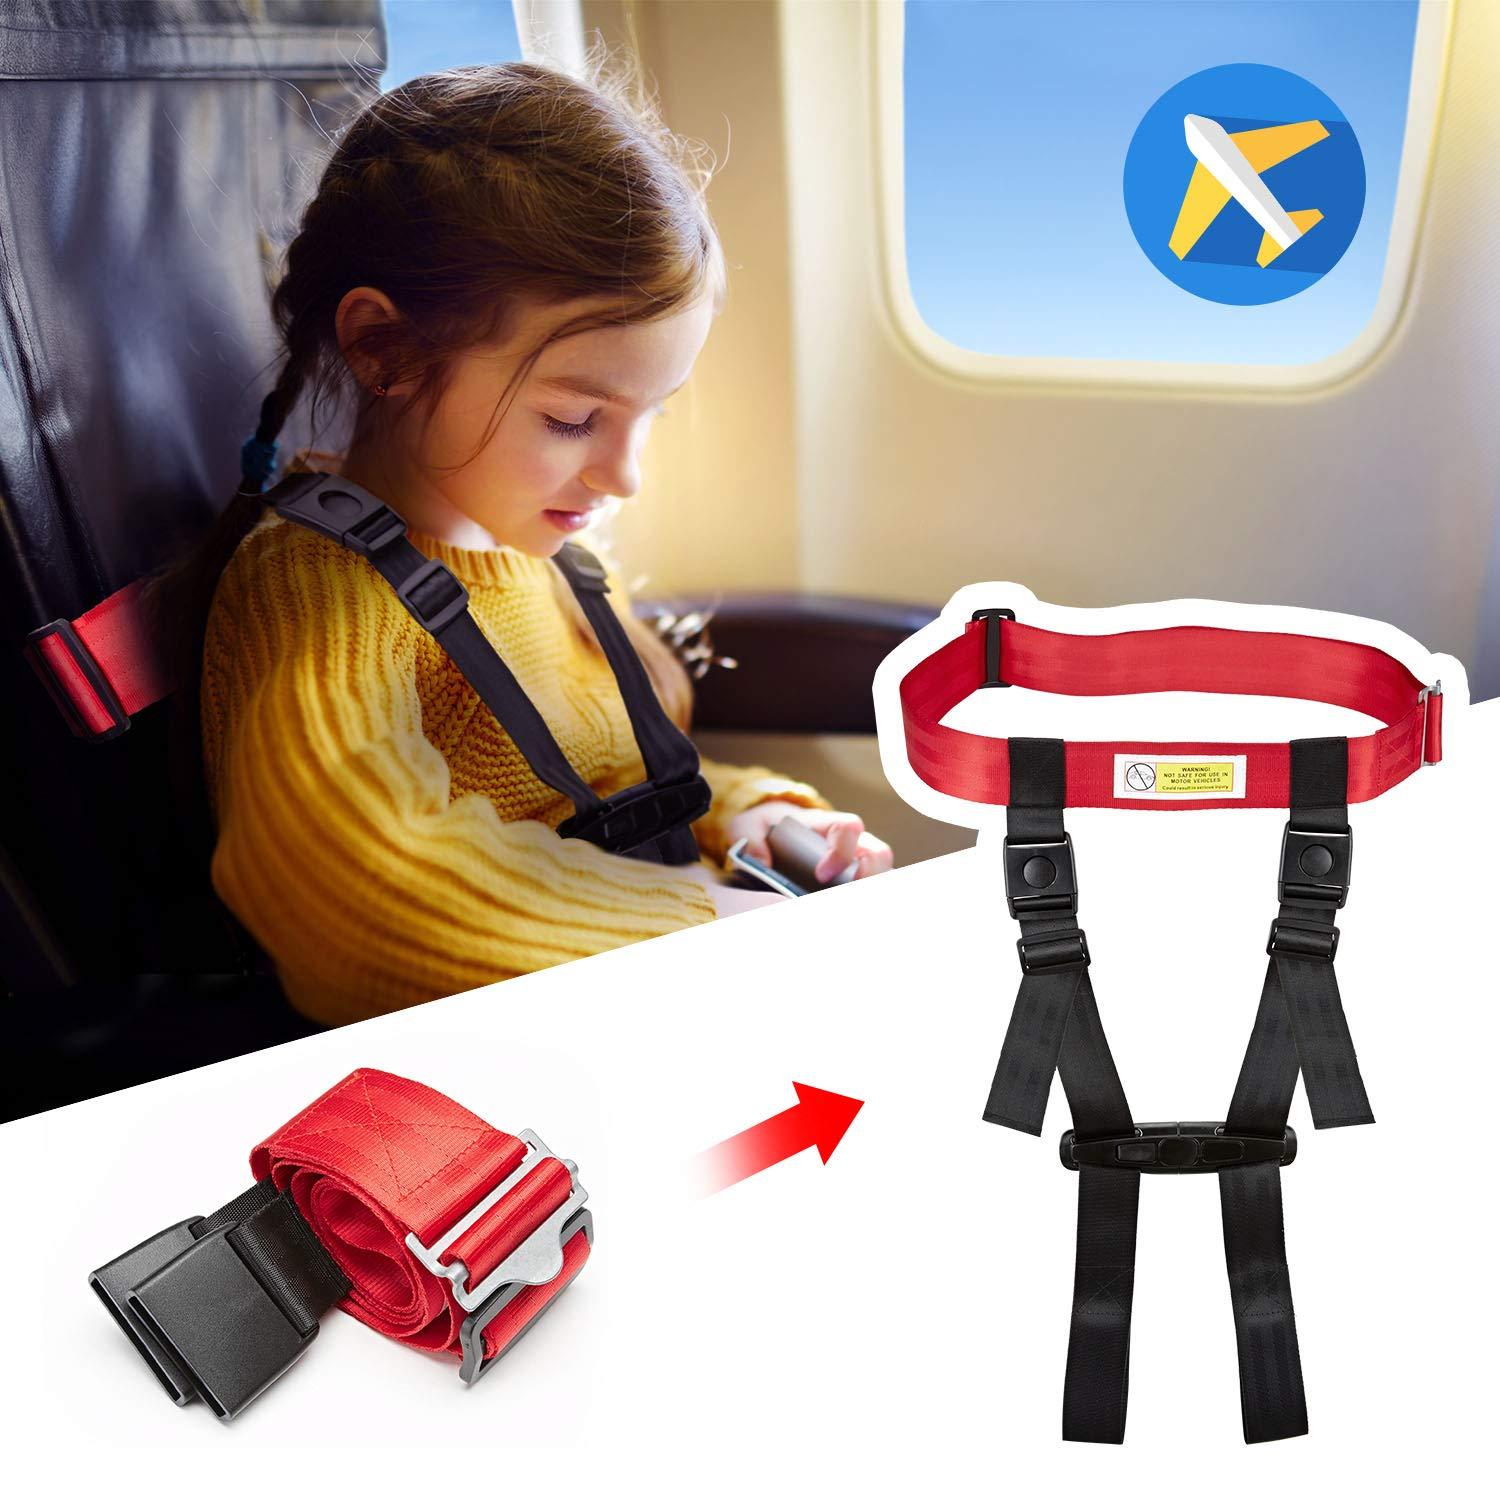 Child Safety Harness Airplane Travel Clip Strap, Travel Harness Safety System Approved by FAA, Airplane Safety Travel Harness for Baby, Toddlers & Kids by Farochy (Image #3)